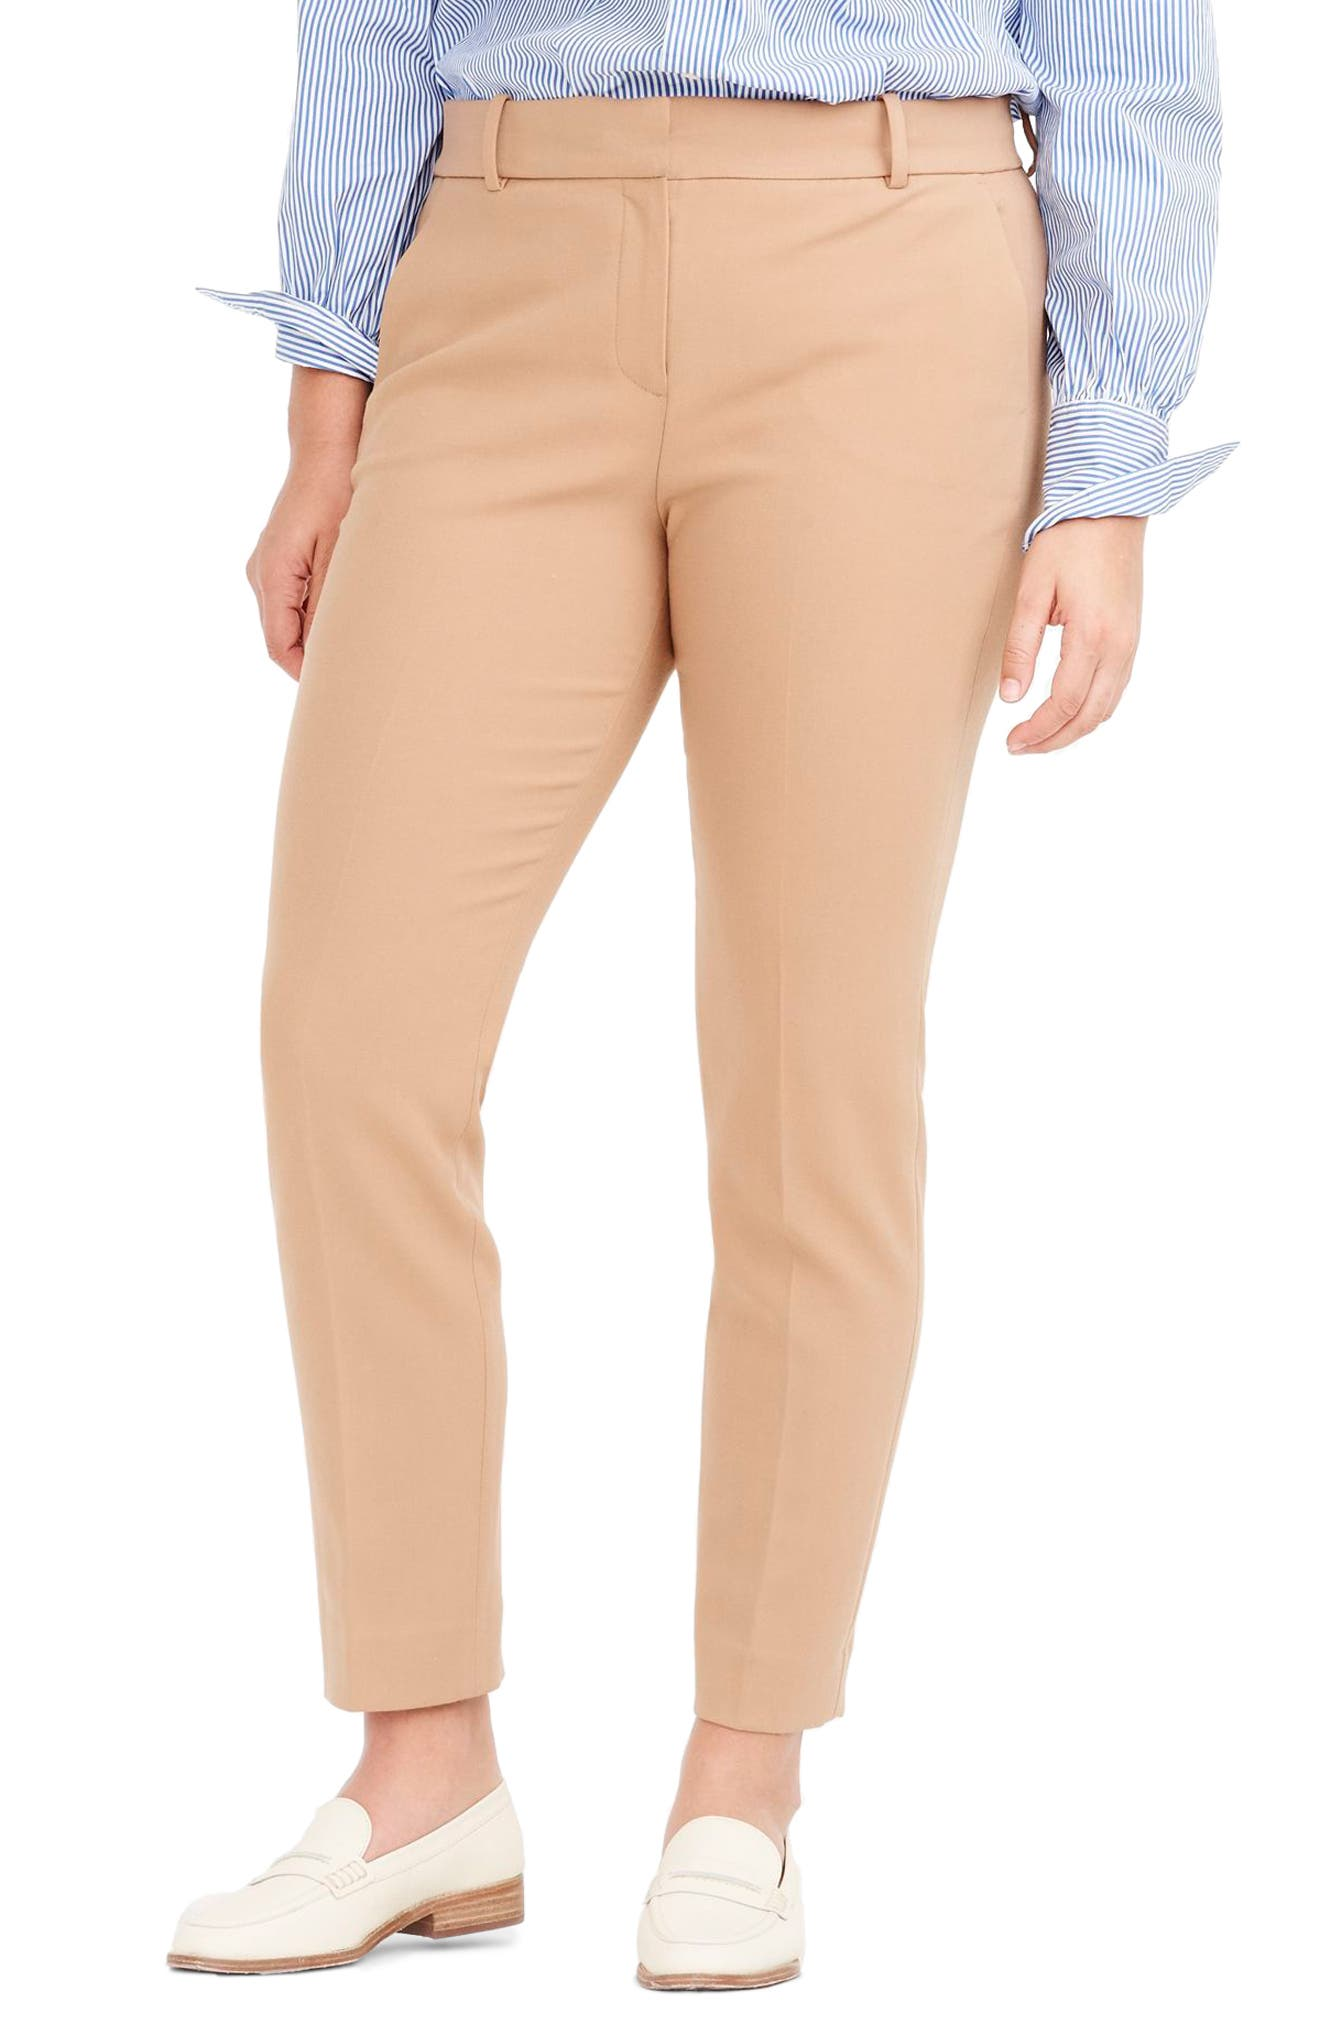 Cameron Four Season Crop Pants,                             Alternate thumbnail 7, color,                             HEATHER SADDLE